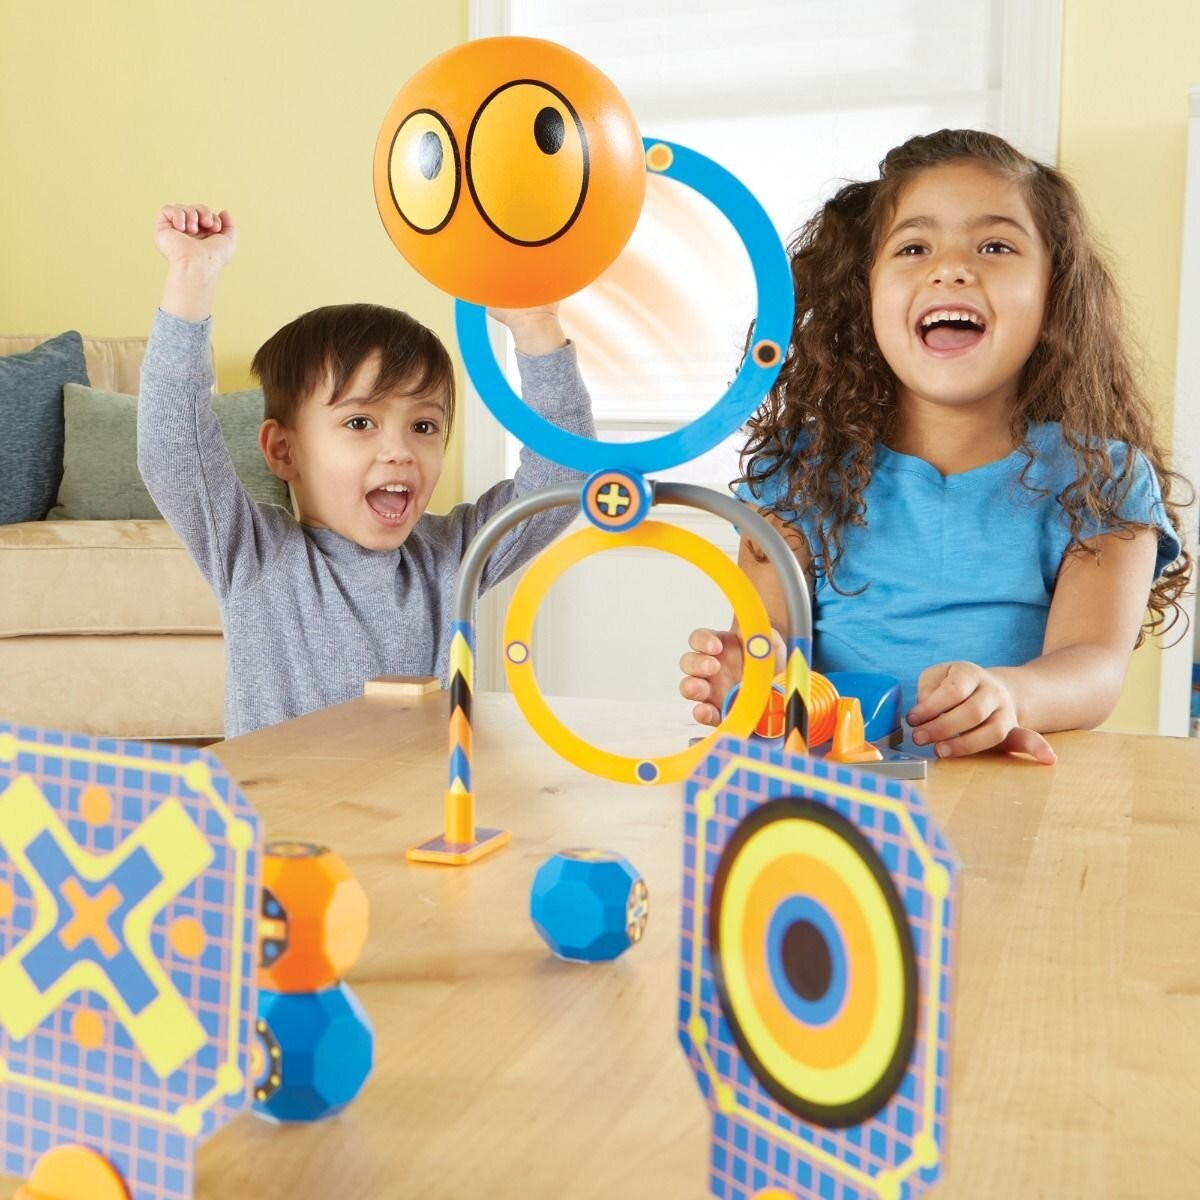 Turbo Pop - Jucarie STEM copii - Learning Resources UK 2